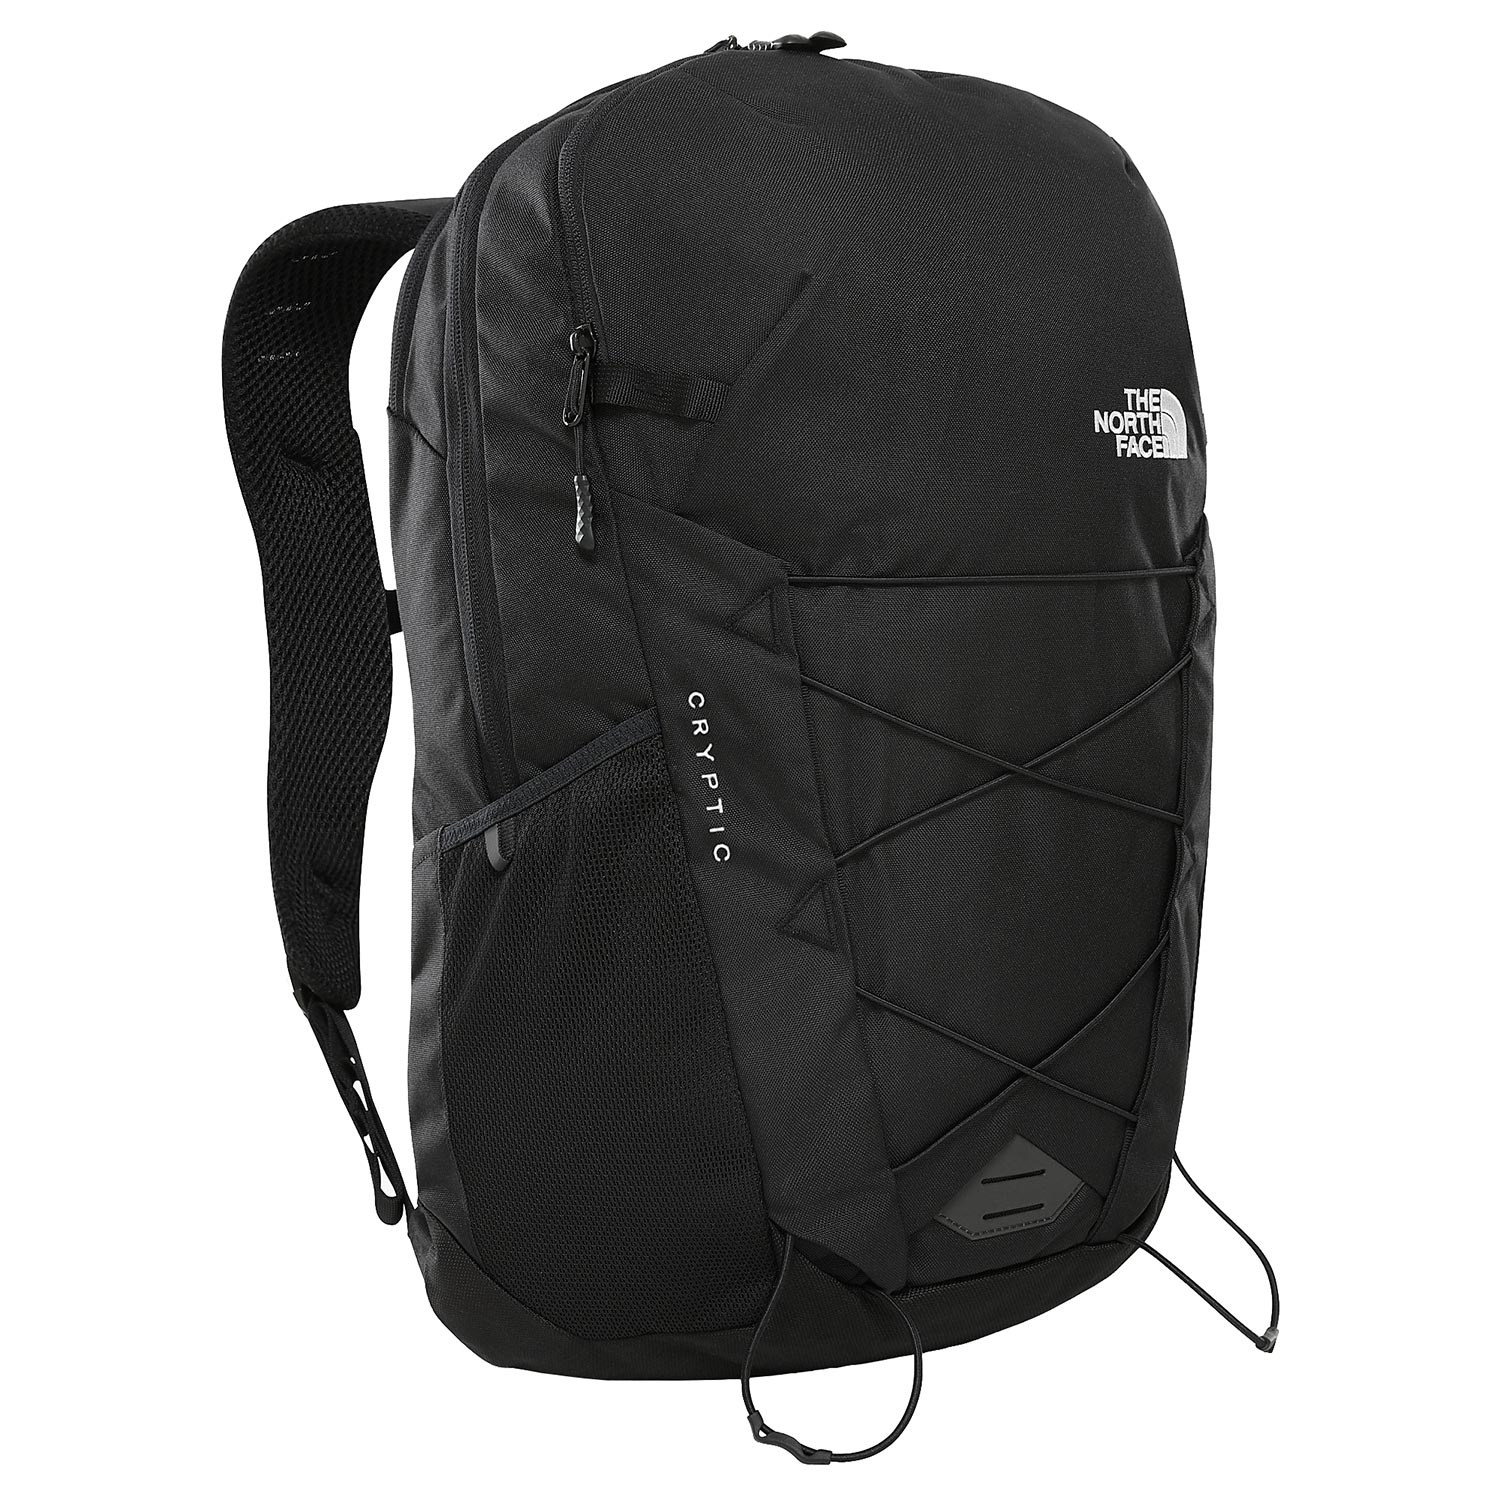 The North Face Cryptic Backpack - Black